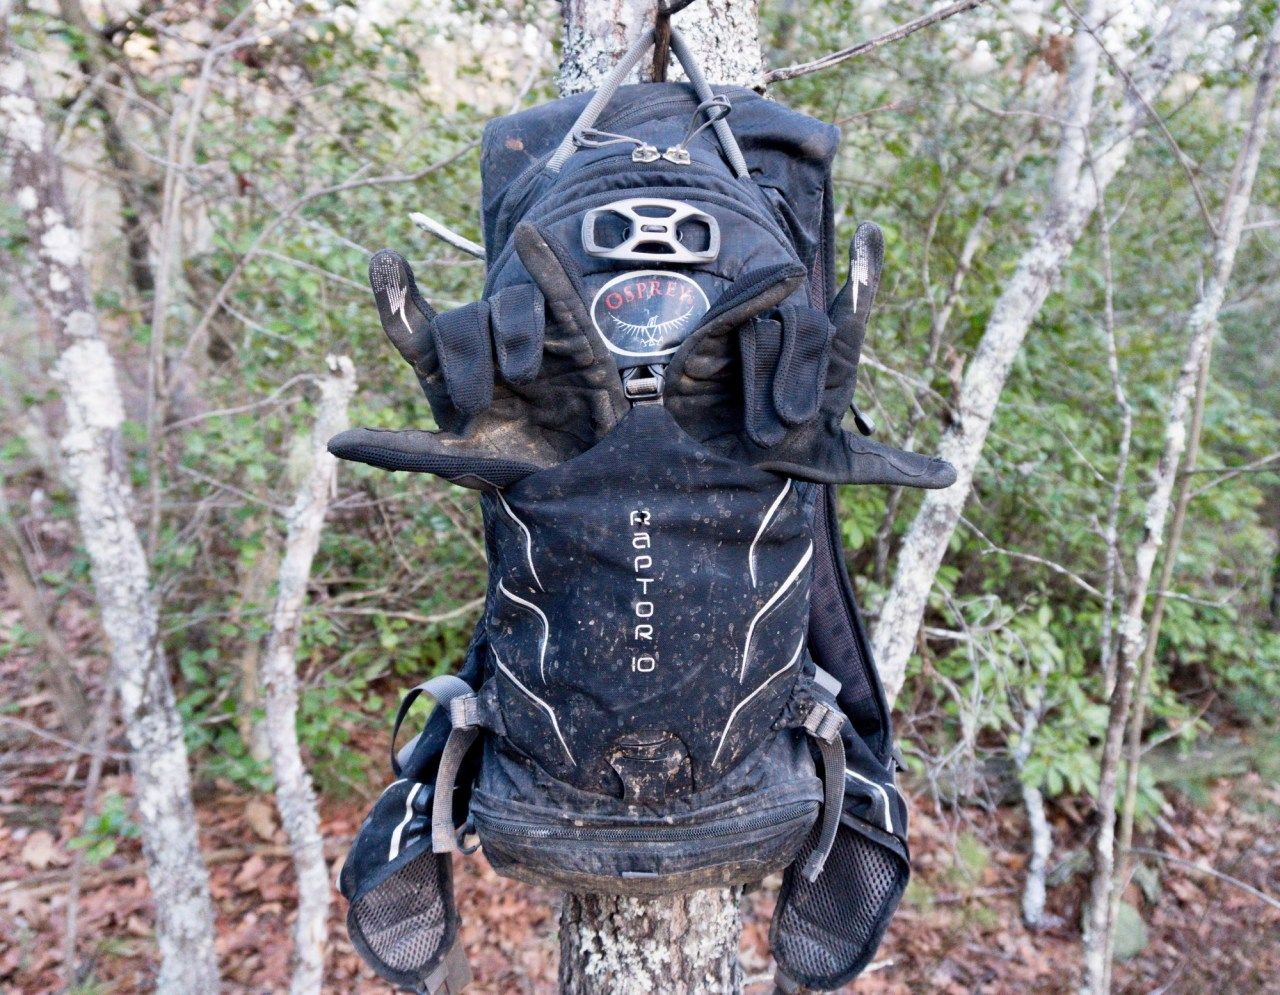 Osprey Raptor 10 Hydration Pack Review With Images Mtb Gear